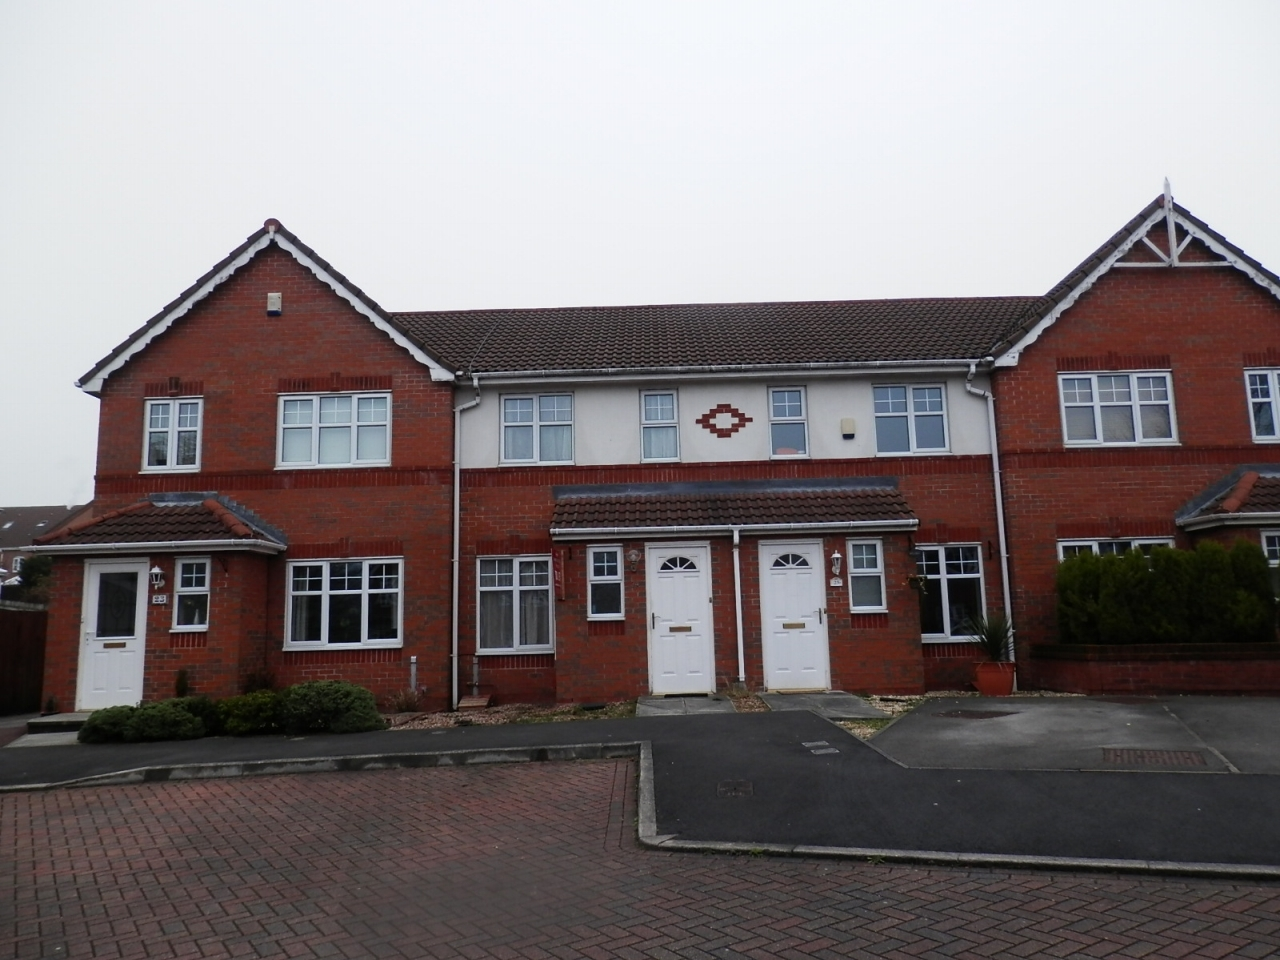 2 bedroom town house in Chorley - Photograph 1.